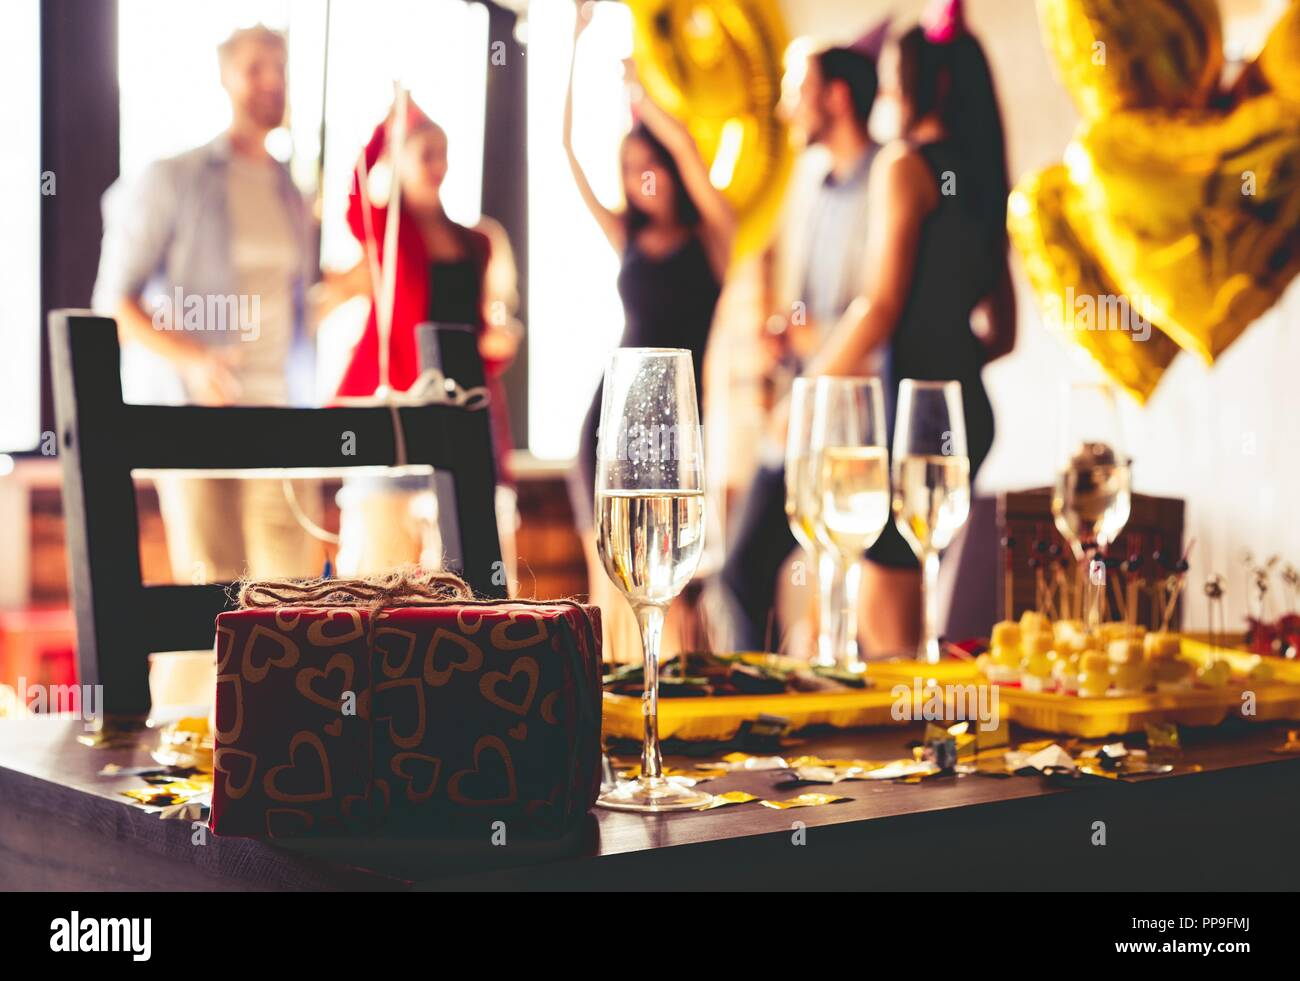 Buffet Dinner Dining Food Celebration Party Concept. Stock Photo